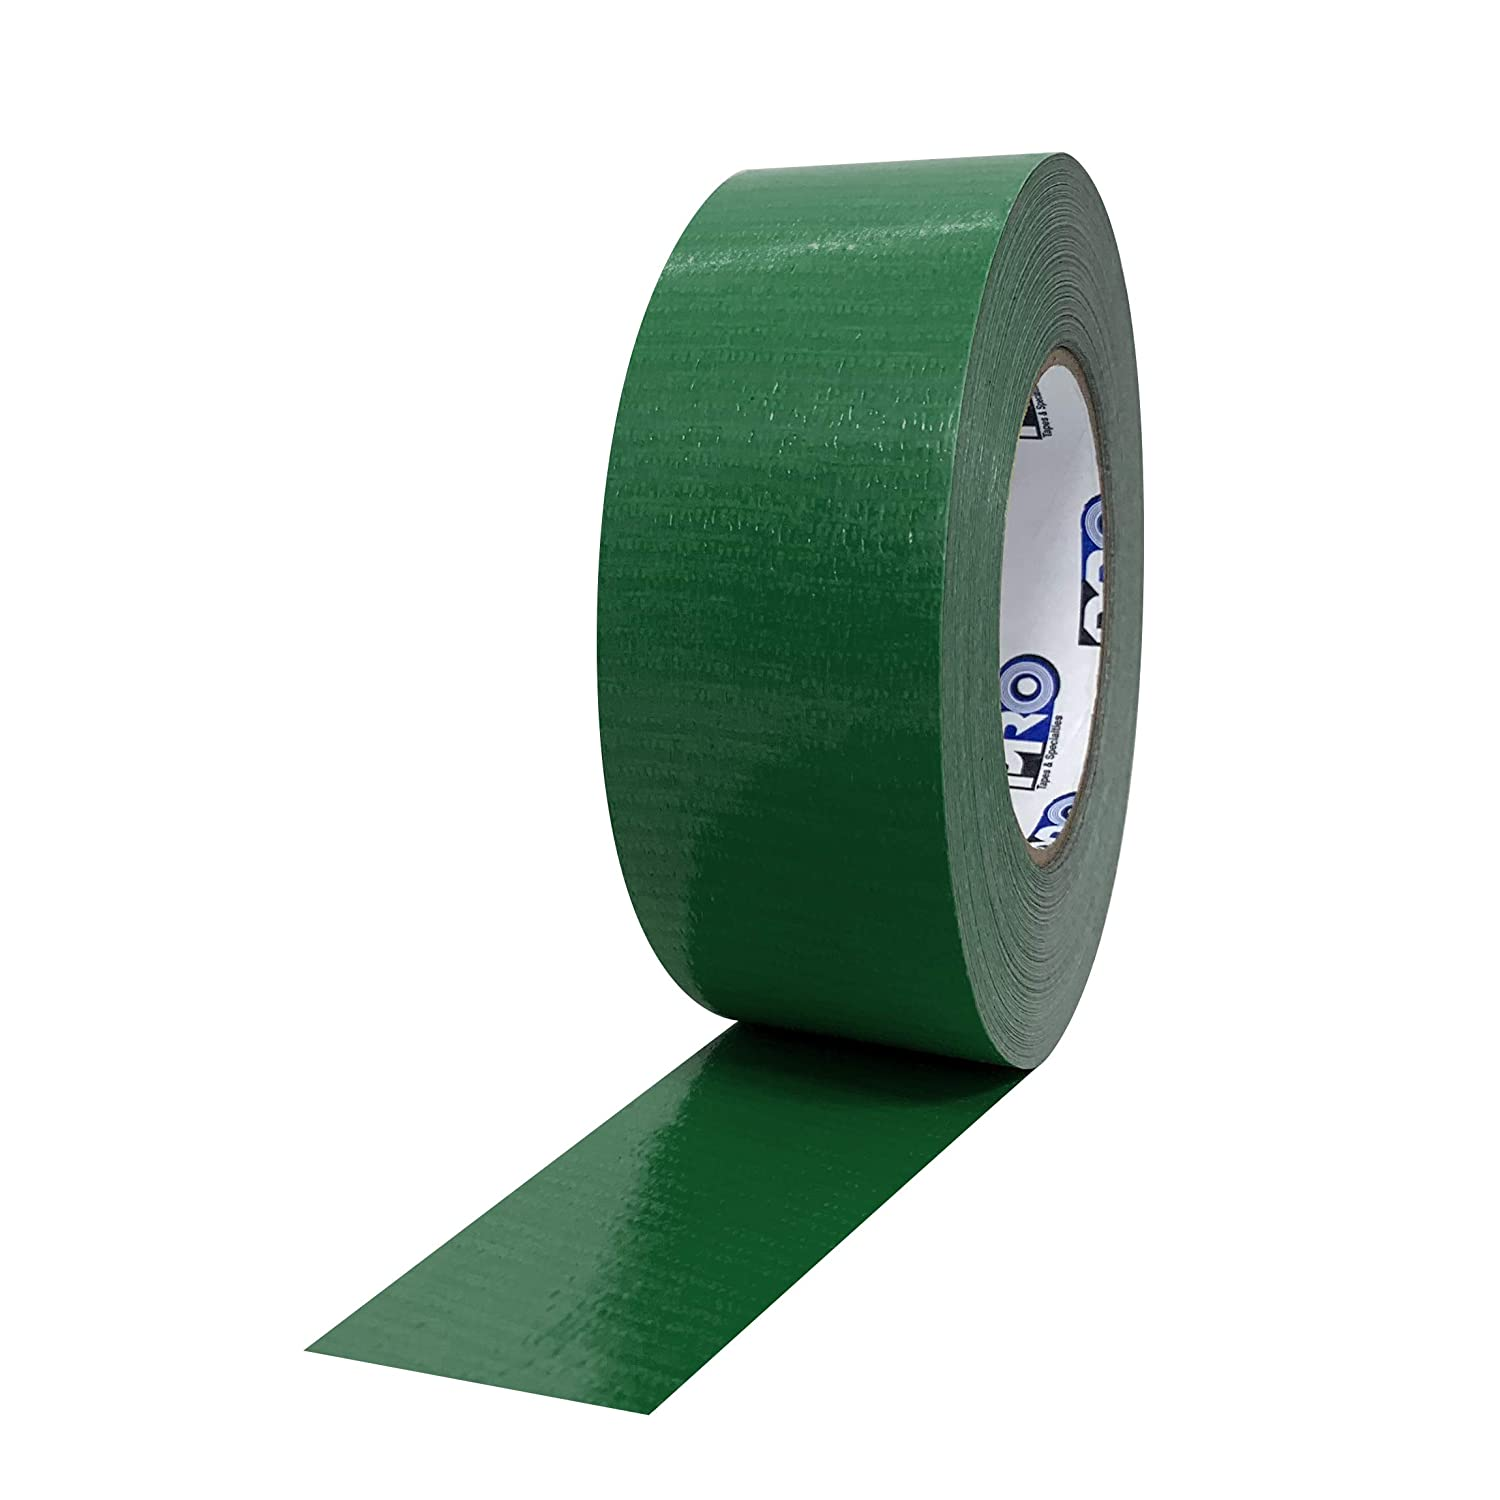 x 50 yds Heavy Duty Gaffers Tape Non-Reflective Multipurpose Made in the USA Brixwell GF355MBLK Gaffer Tape Matte Black Professional Grade 3 in